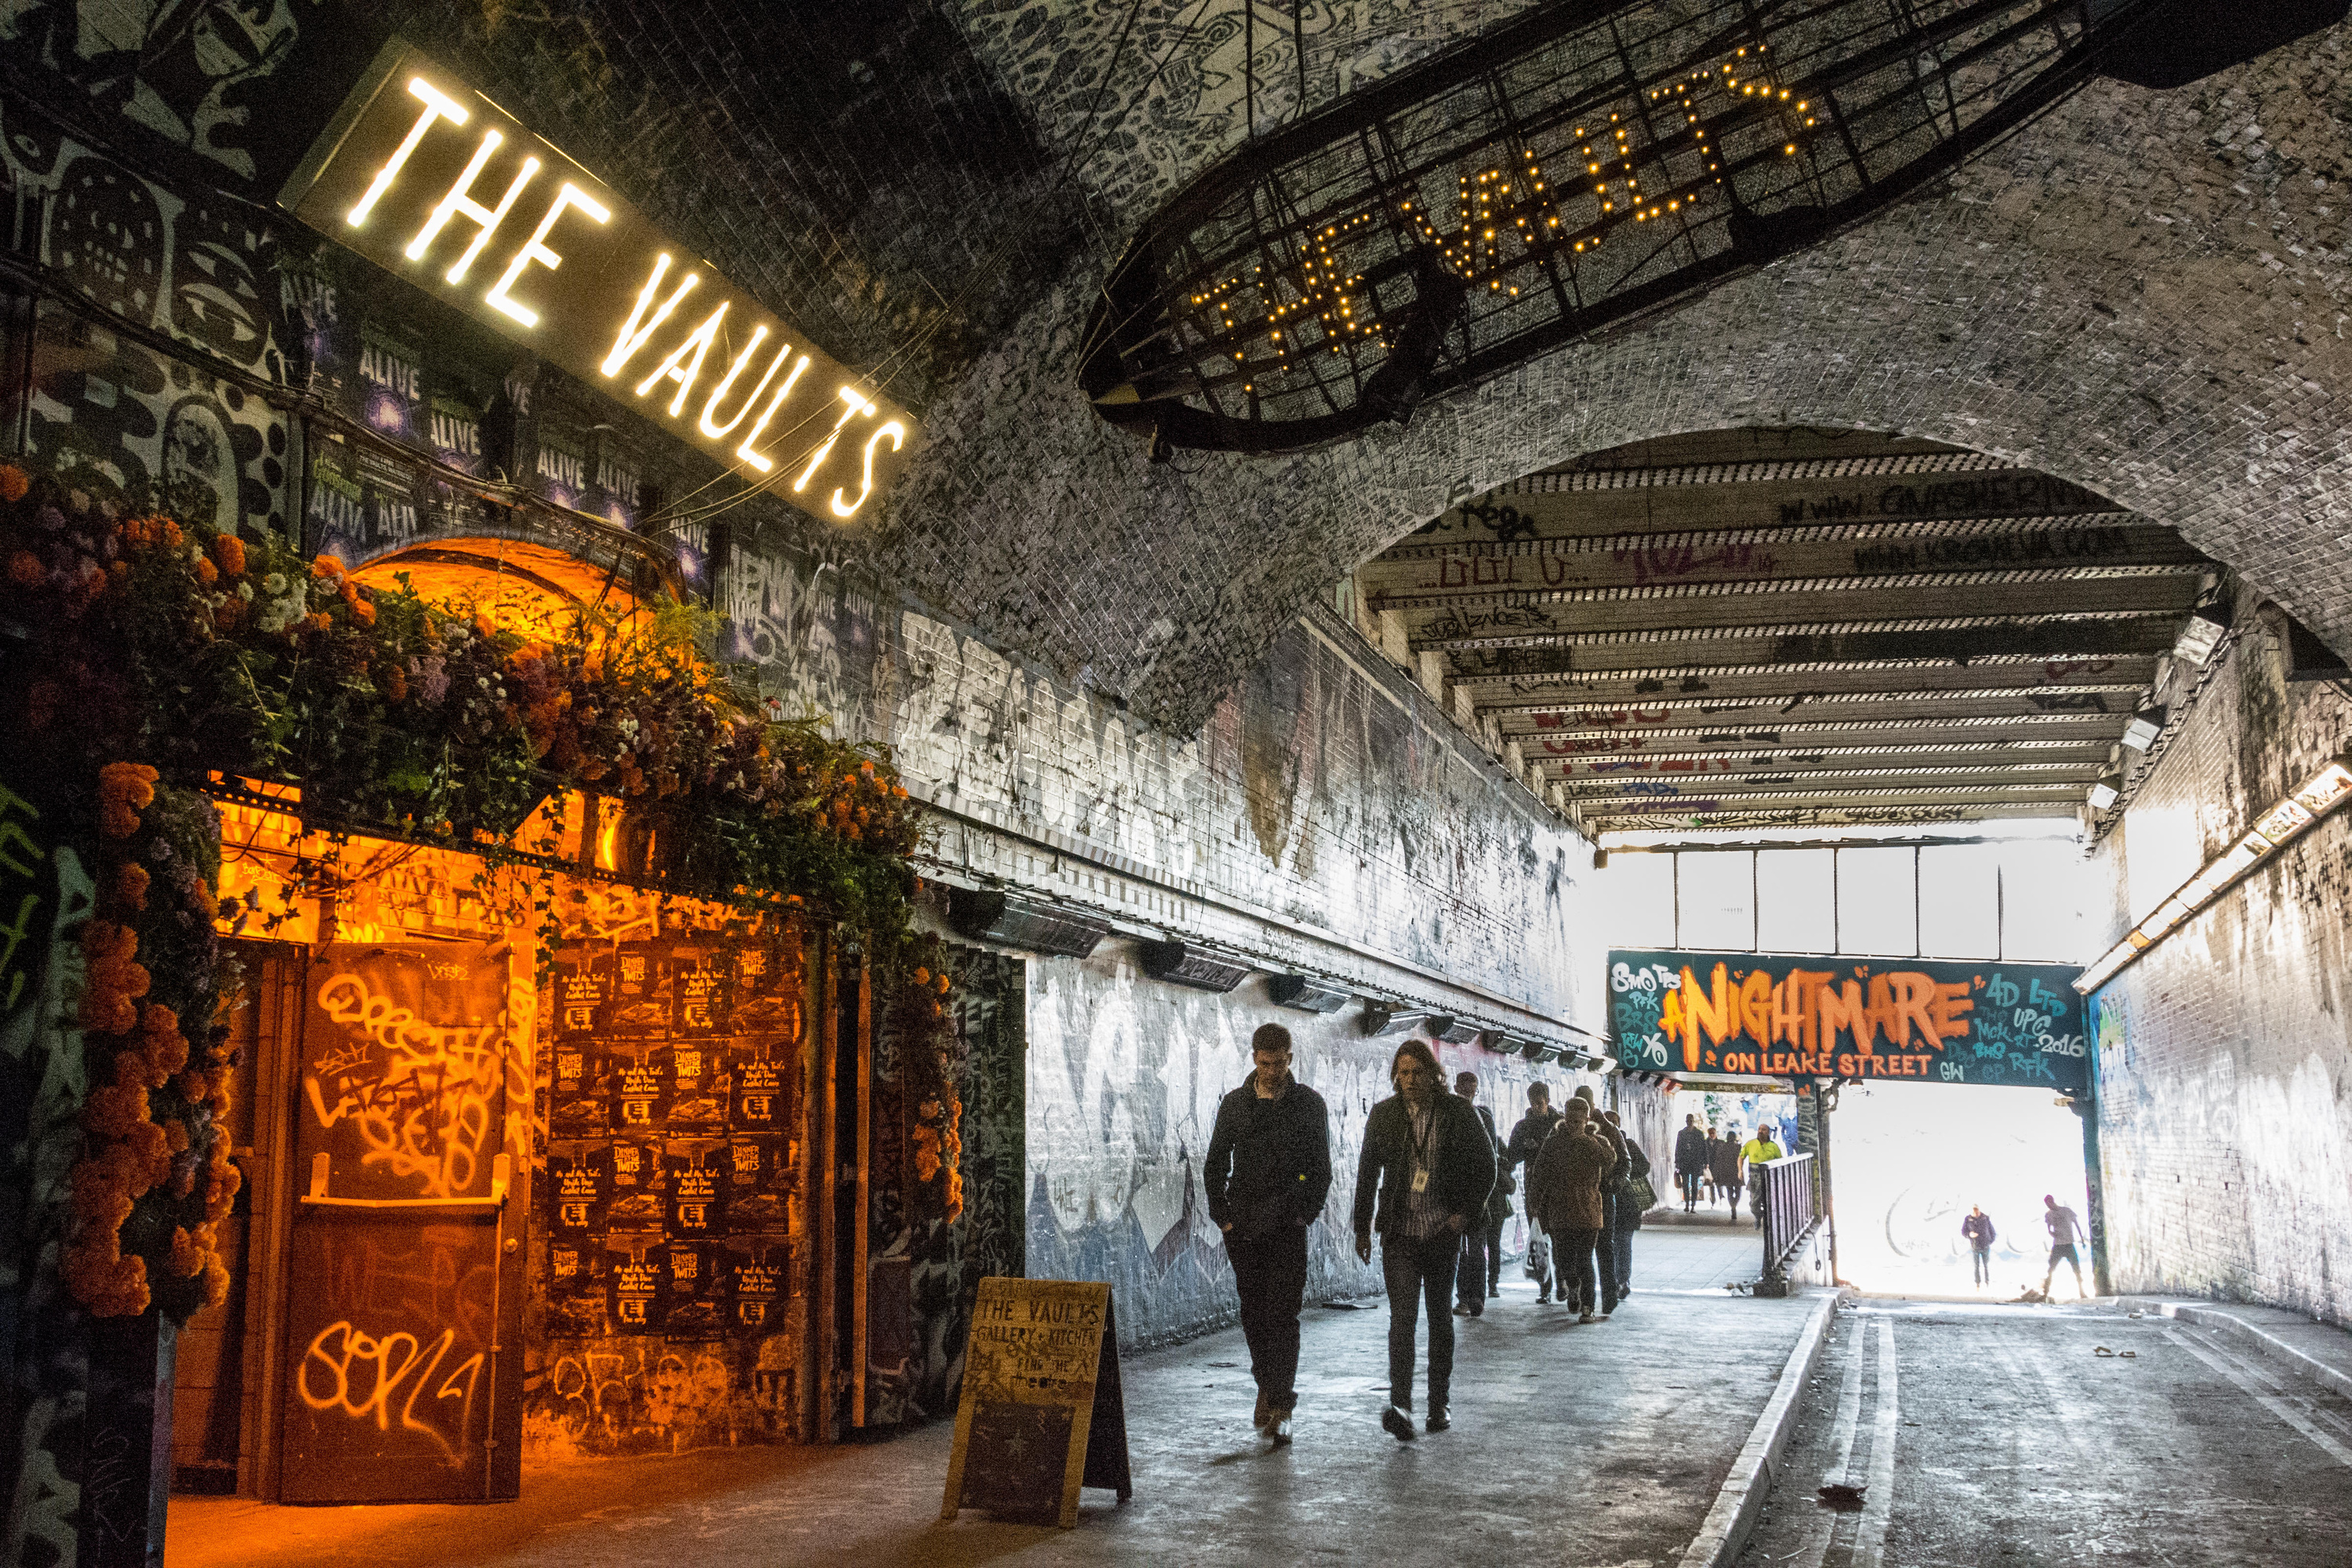 22 must-go places in Waterloo and the South Bank